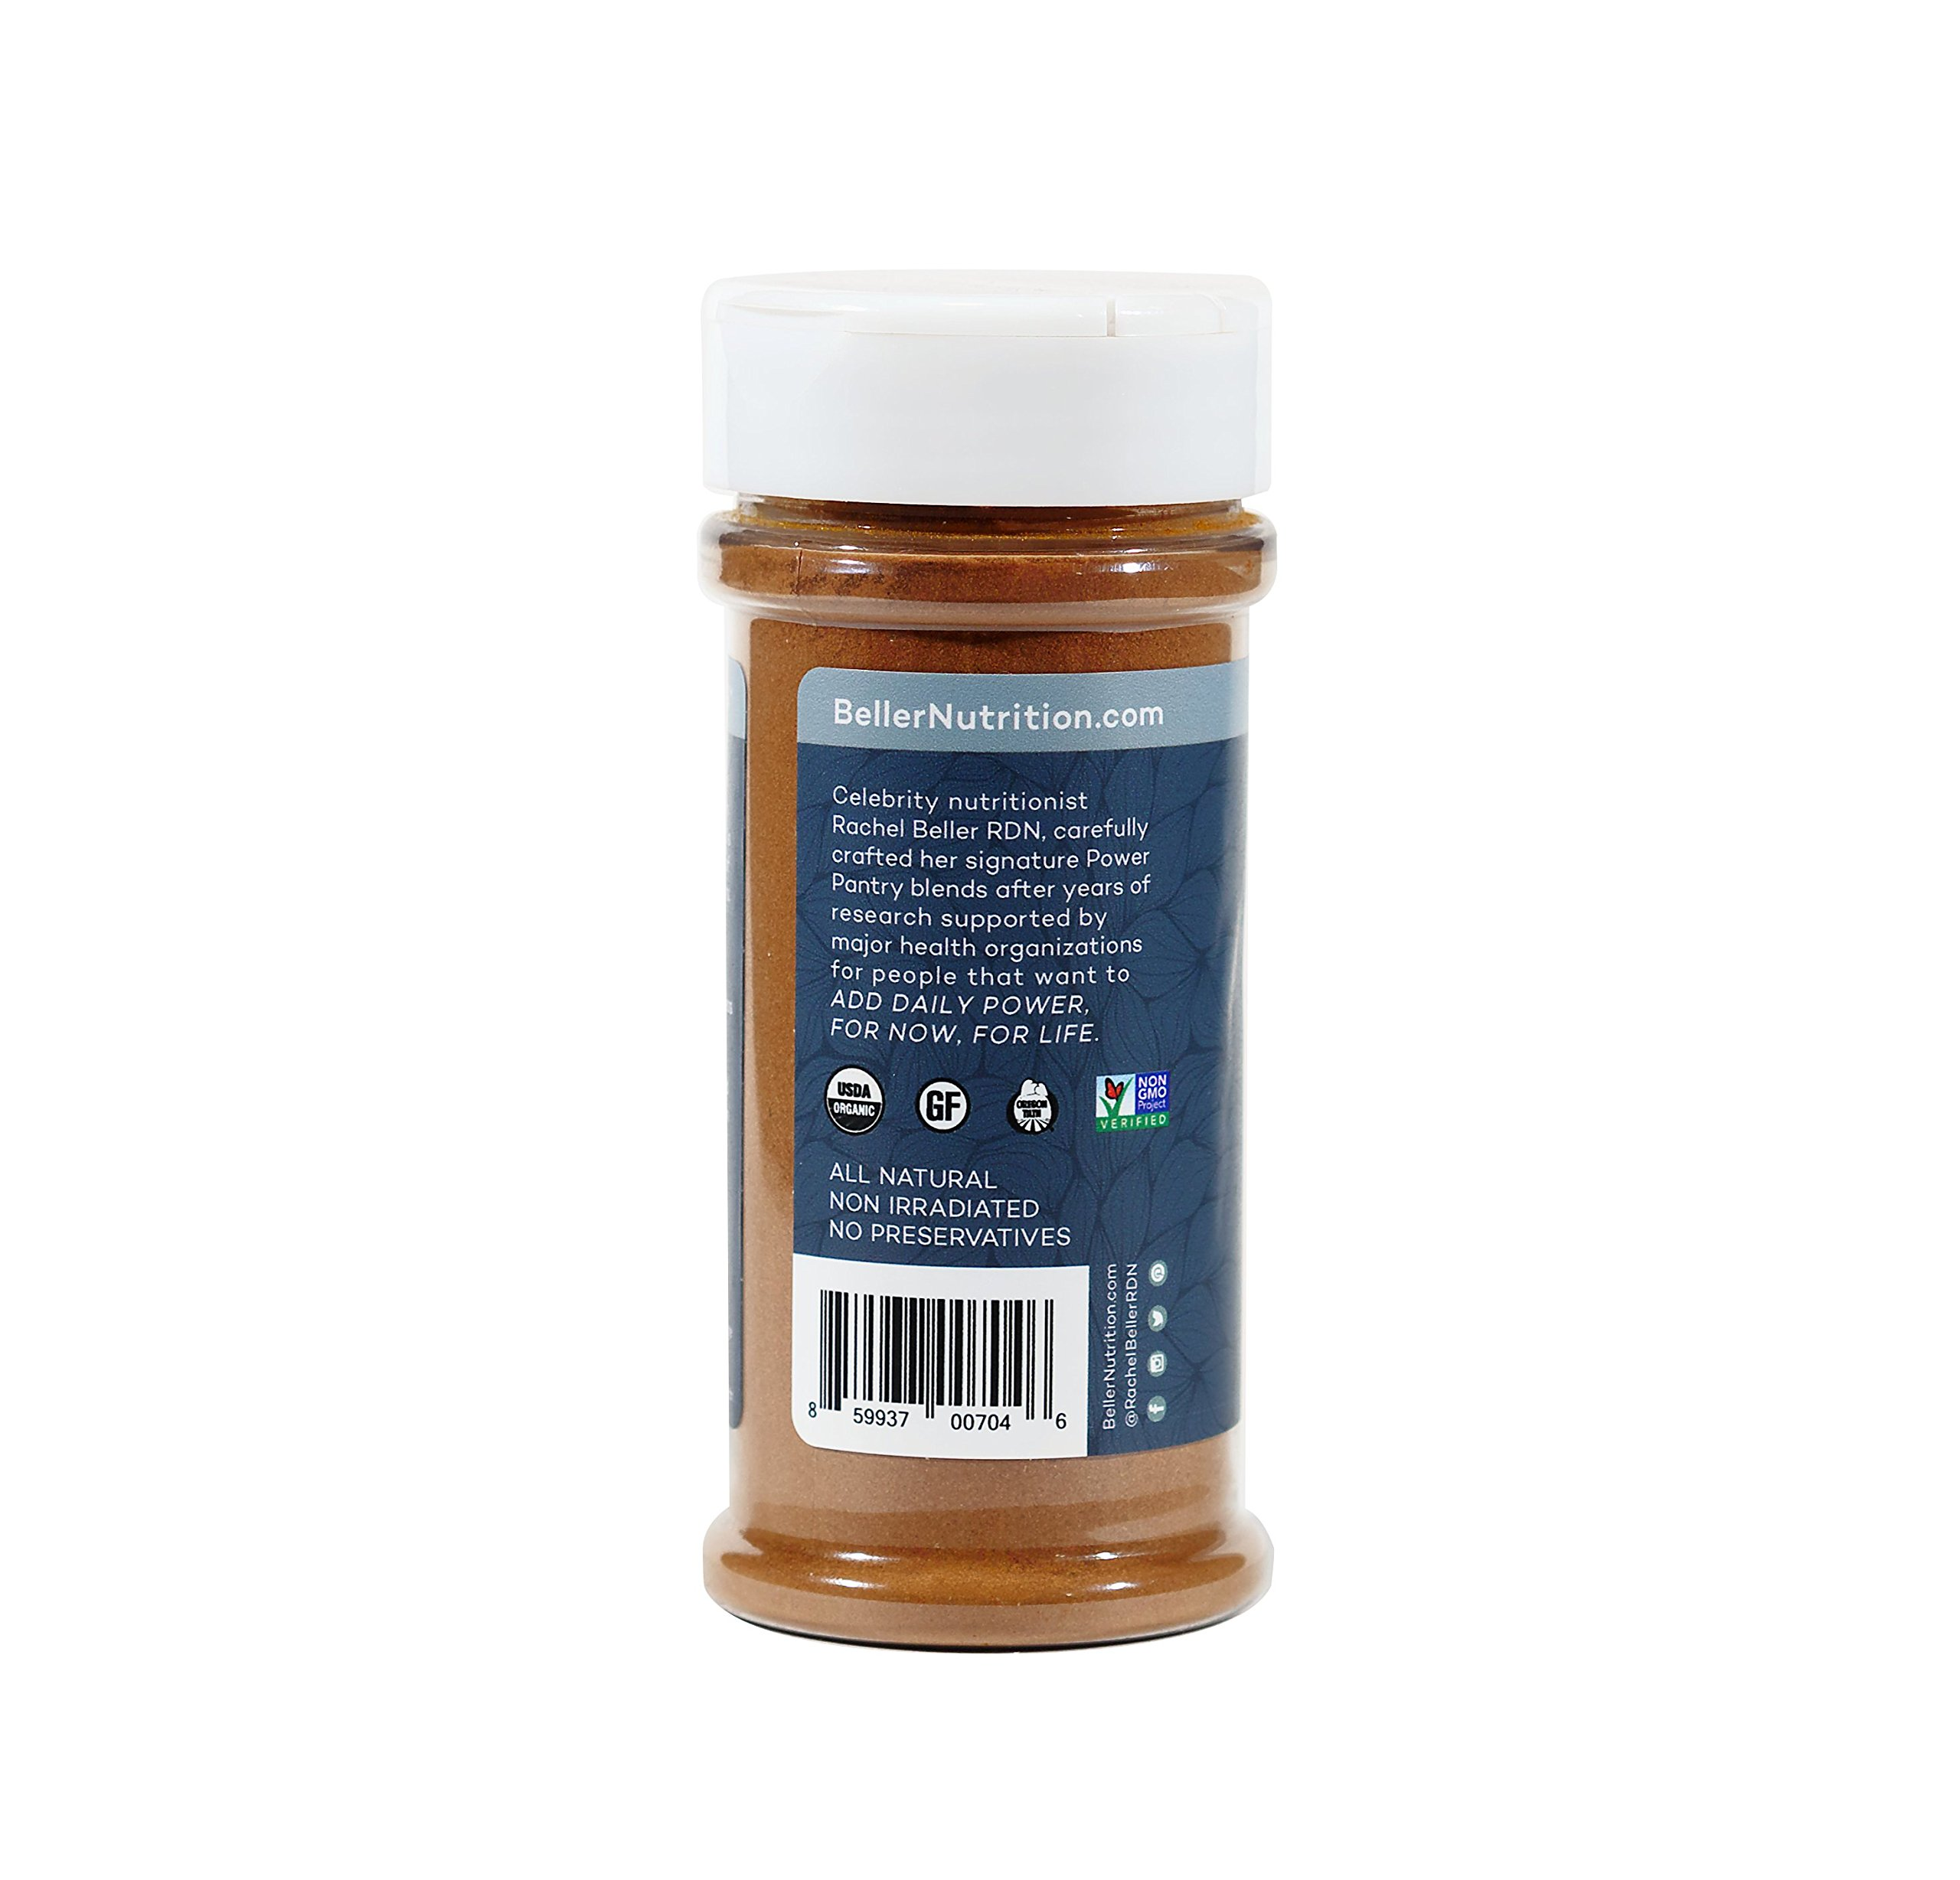 Rachel Beller's Power Pantry Ceylon Cinnamon - Organic Ceylon cinnamon spice, 3.1 ounce by Rachel Beller's Power Pantry (Image #3)